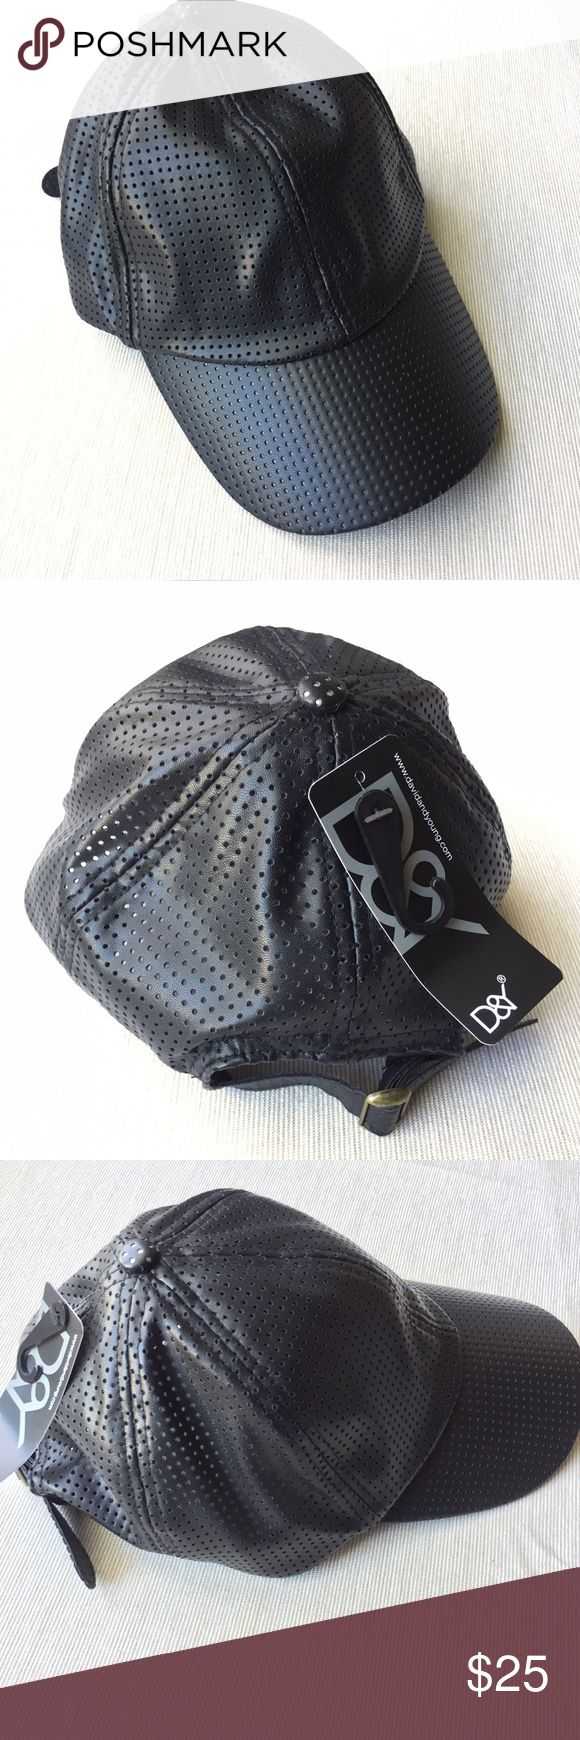 D&Y black faux leather baseball cap D&Y black faux leather baseball cap. Brand New. Never been worn. Very cute! Not Nasty Gal, but Posted as such for exposure. Please feel free to ask questions. Thank you. Nasty Gal Accessories Hats